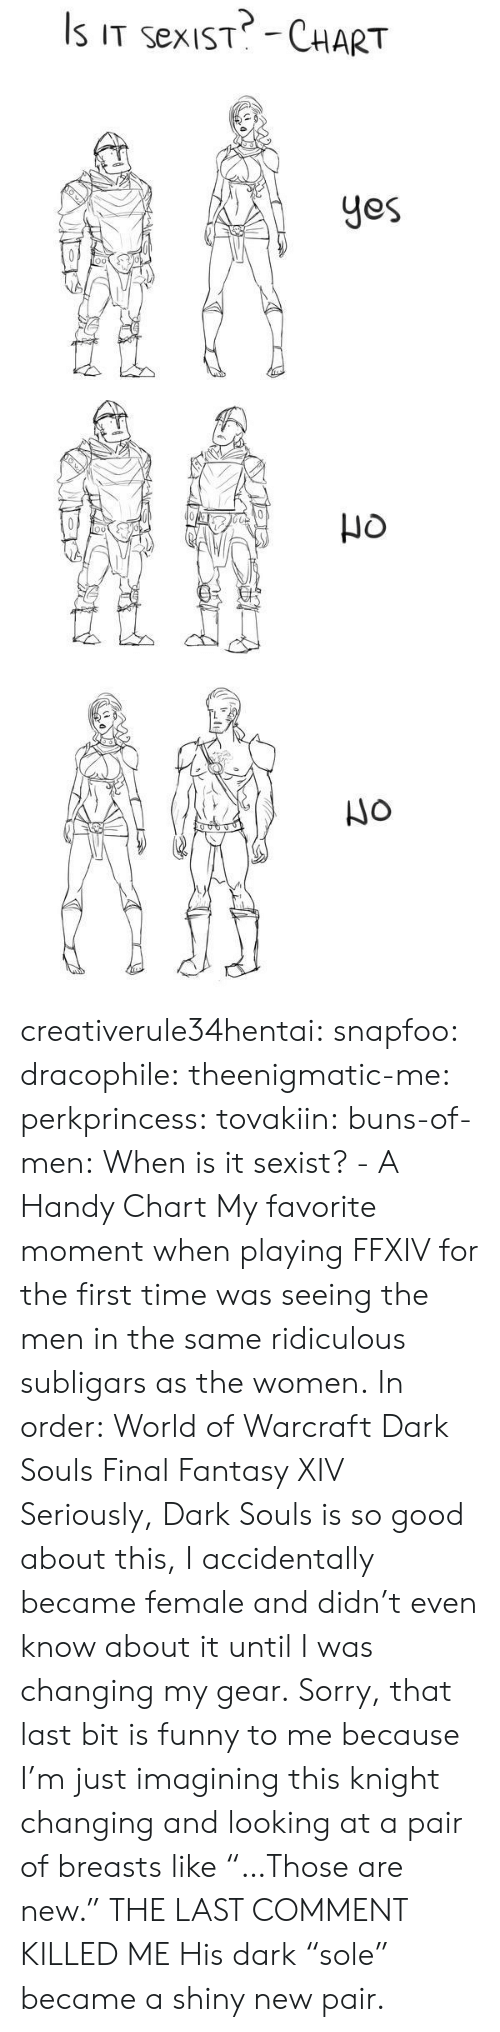 """Funny, Reddit, and Sorry: Is IT SexIST -CHART  Jes creativerule34hentai:  snapfoo:  dracophile:  theenigmatic-me:  perkprincess:  tovakiin:  buns-of-men:  When is it sexist? - A Handy Chart  My favorite moment when playing FFXIV for the first time was seeing the men in the same ridiculous subligars as the women.  In order: World of Warcraft Dark Souls Final Fantasy XIV   Seriously, Dark Souls is so good about this, I accidentally became female and didn't even know about it until I was changing my gear.   Sorry, that last bit is funny to me because I'm just imagining this knight changing and looking at a pair of breasts like """"…Those are new.""""   THE LAST COMMENT KILLED ME  His dark """"sole"""" became a shiny new pair."""